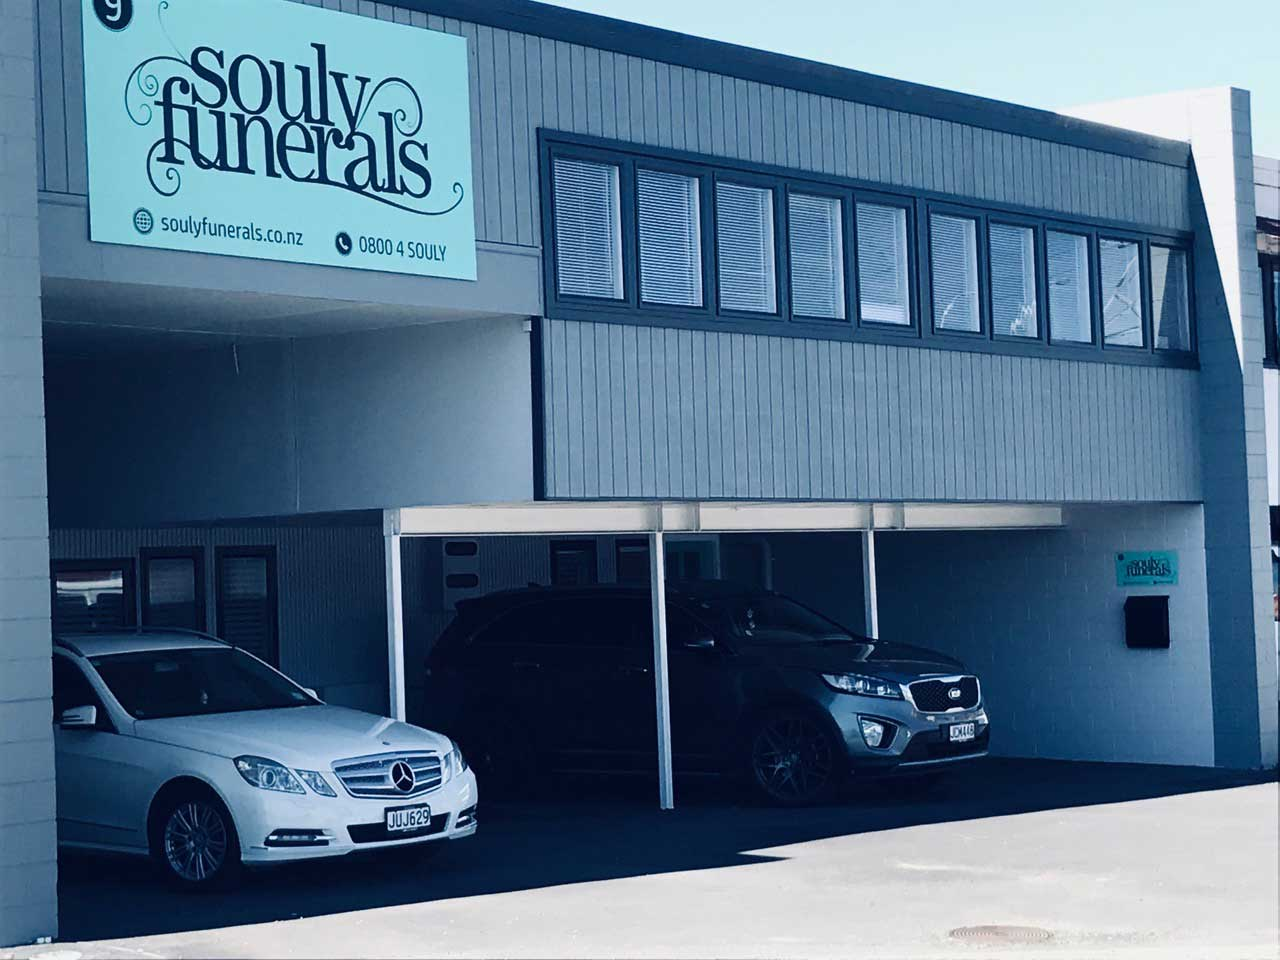 Funeral home auckland souly funerals our funeral home is located in pakuranga auckland solutioingenieria Choice Image